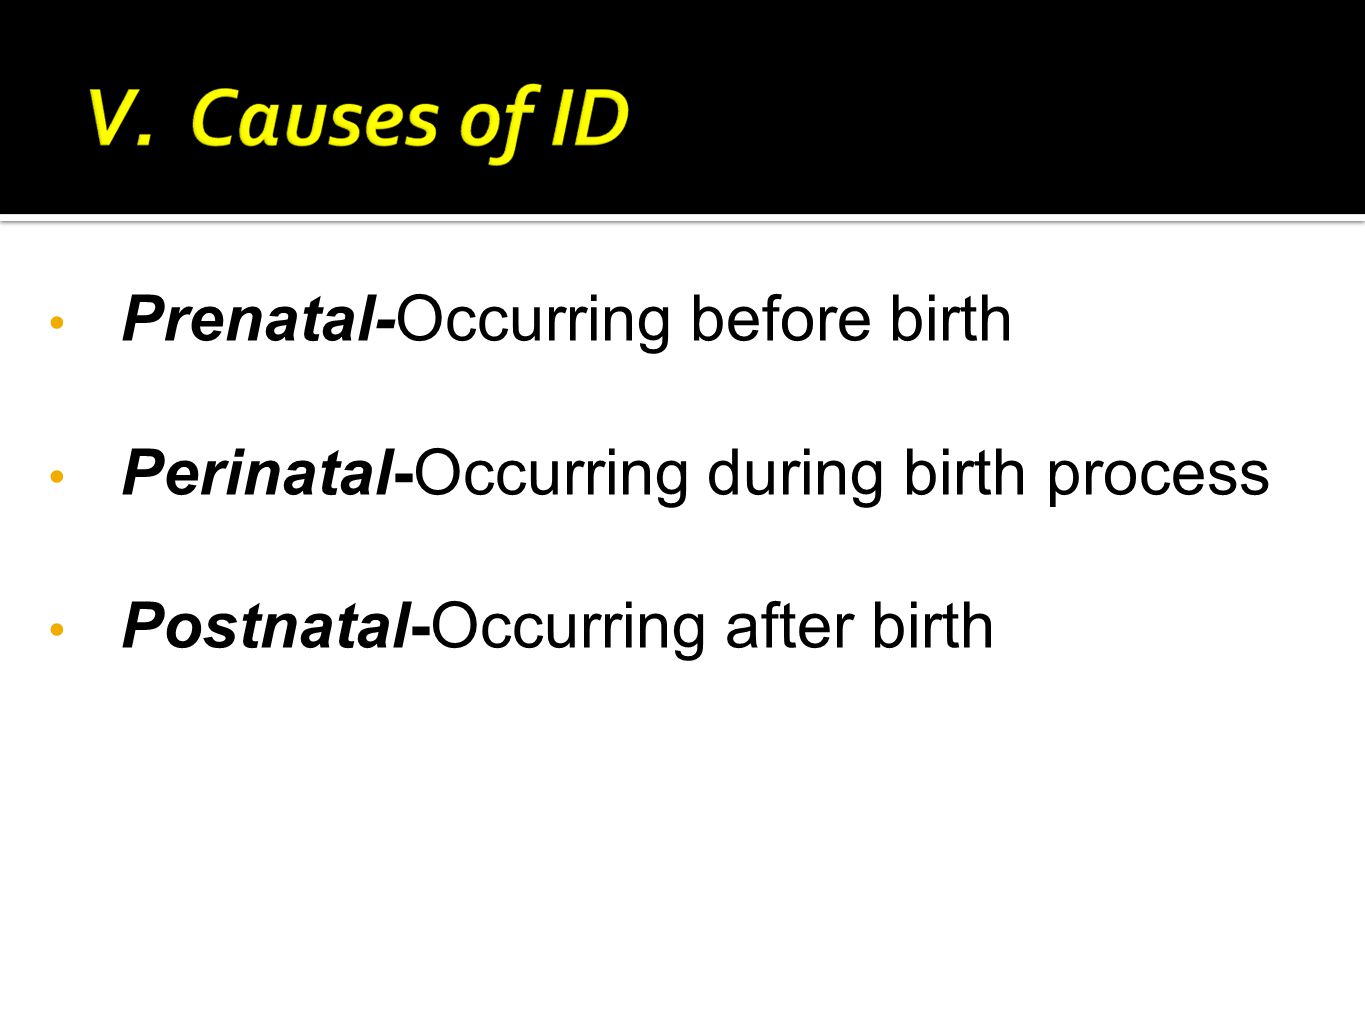 Prenatal-Occurring before birth Perinatal-Occurring during birth process Postnatal-Occurring after birth